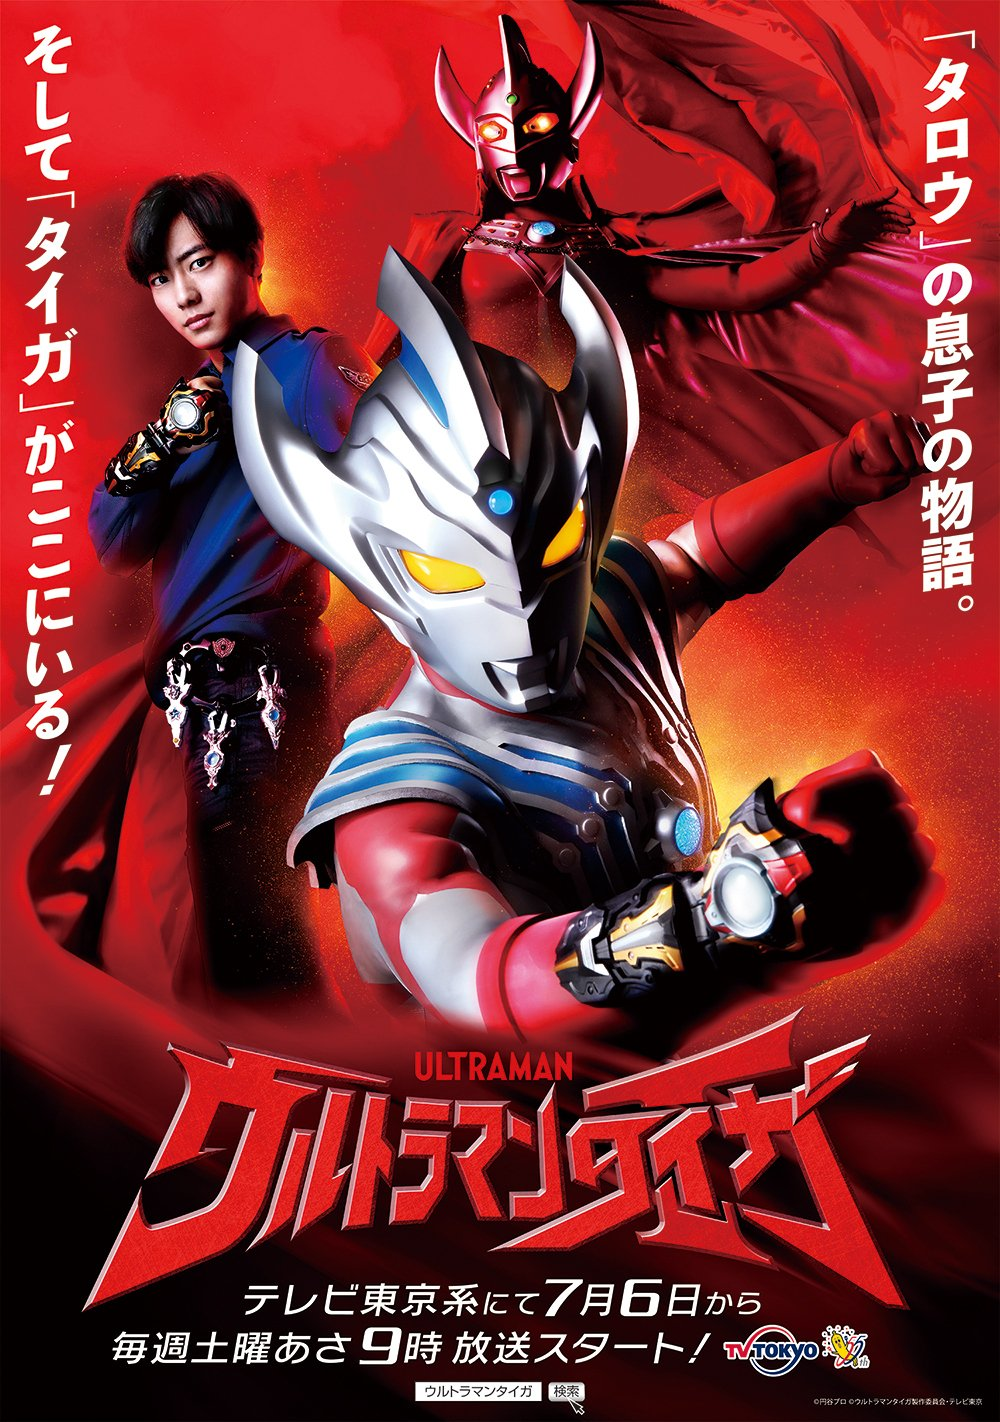 ULTRAMAN TAIGA Announced as the Latest Live-Action Series